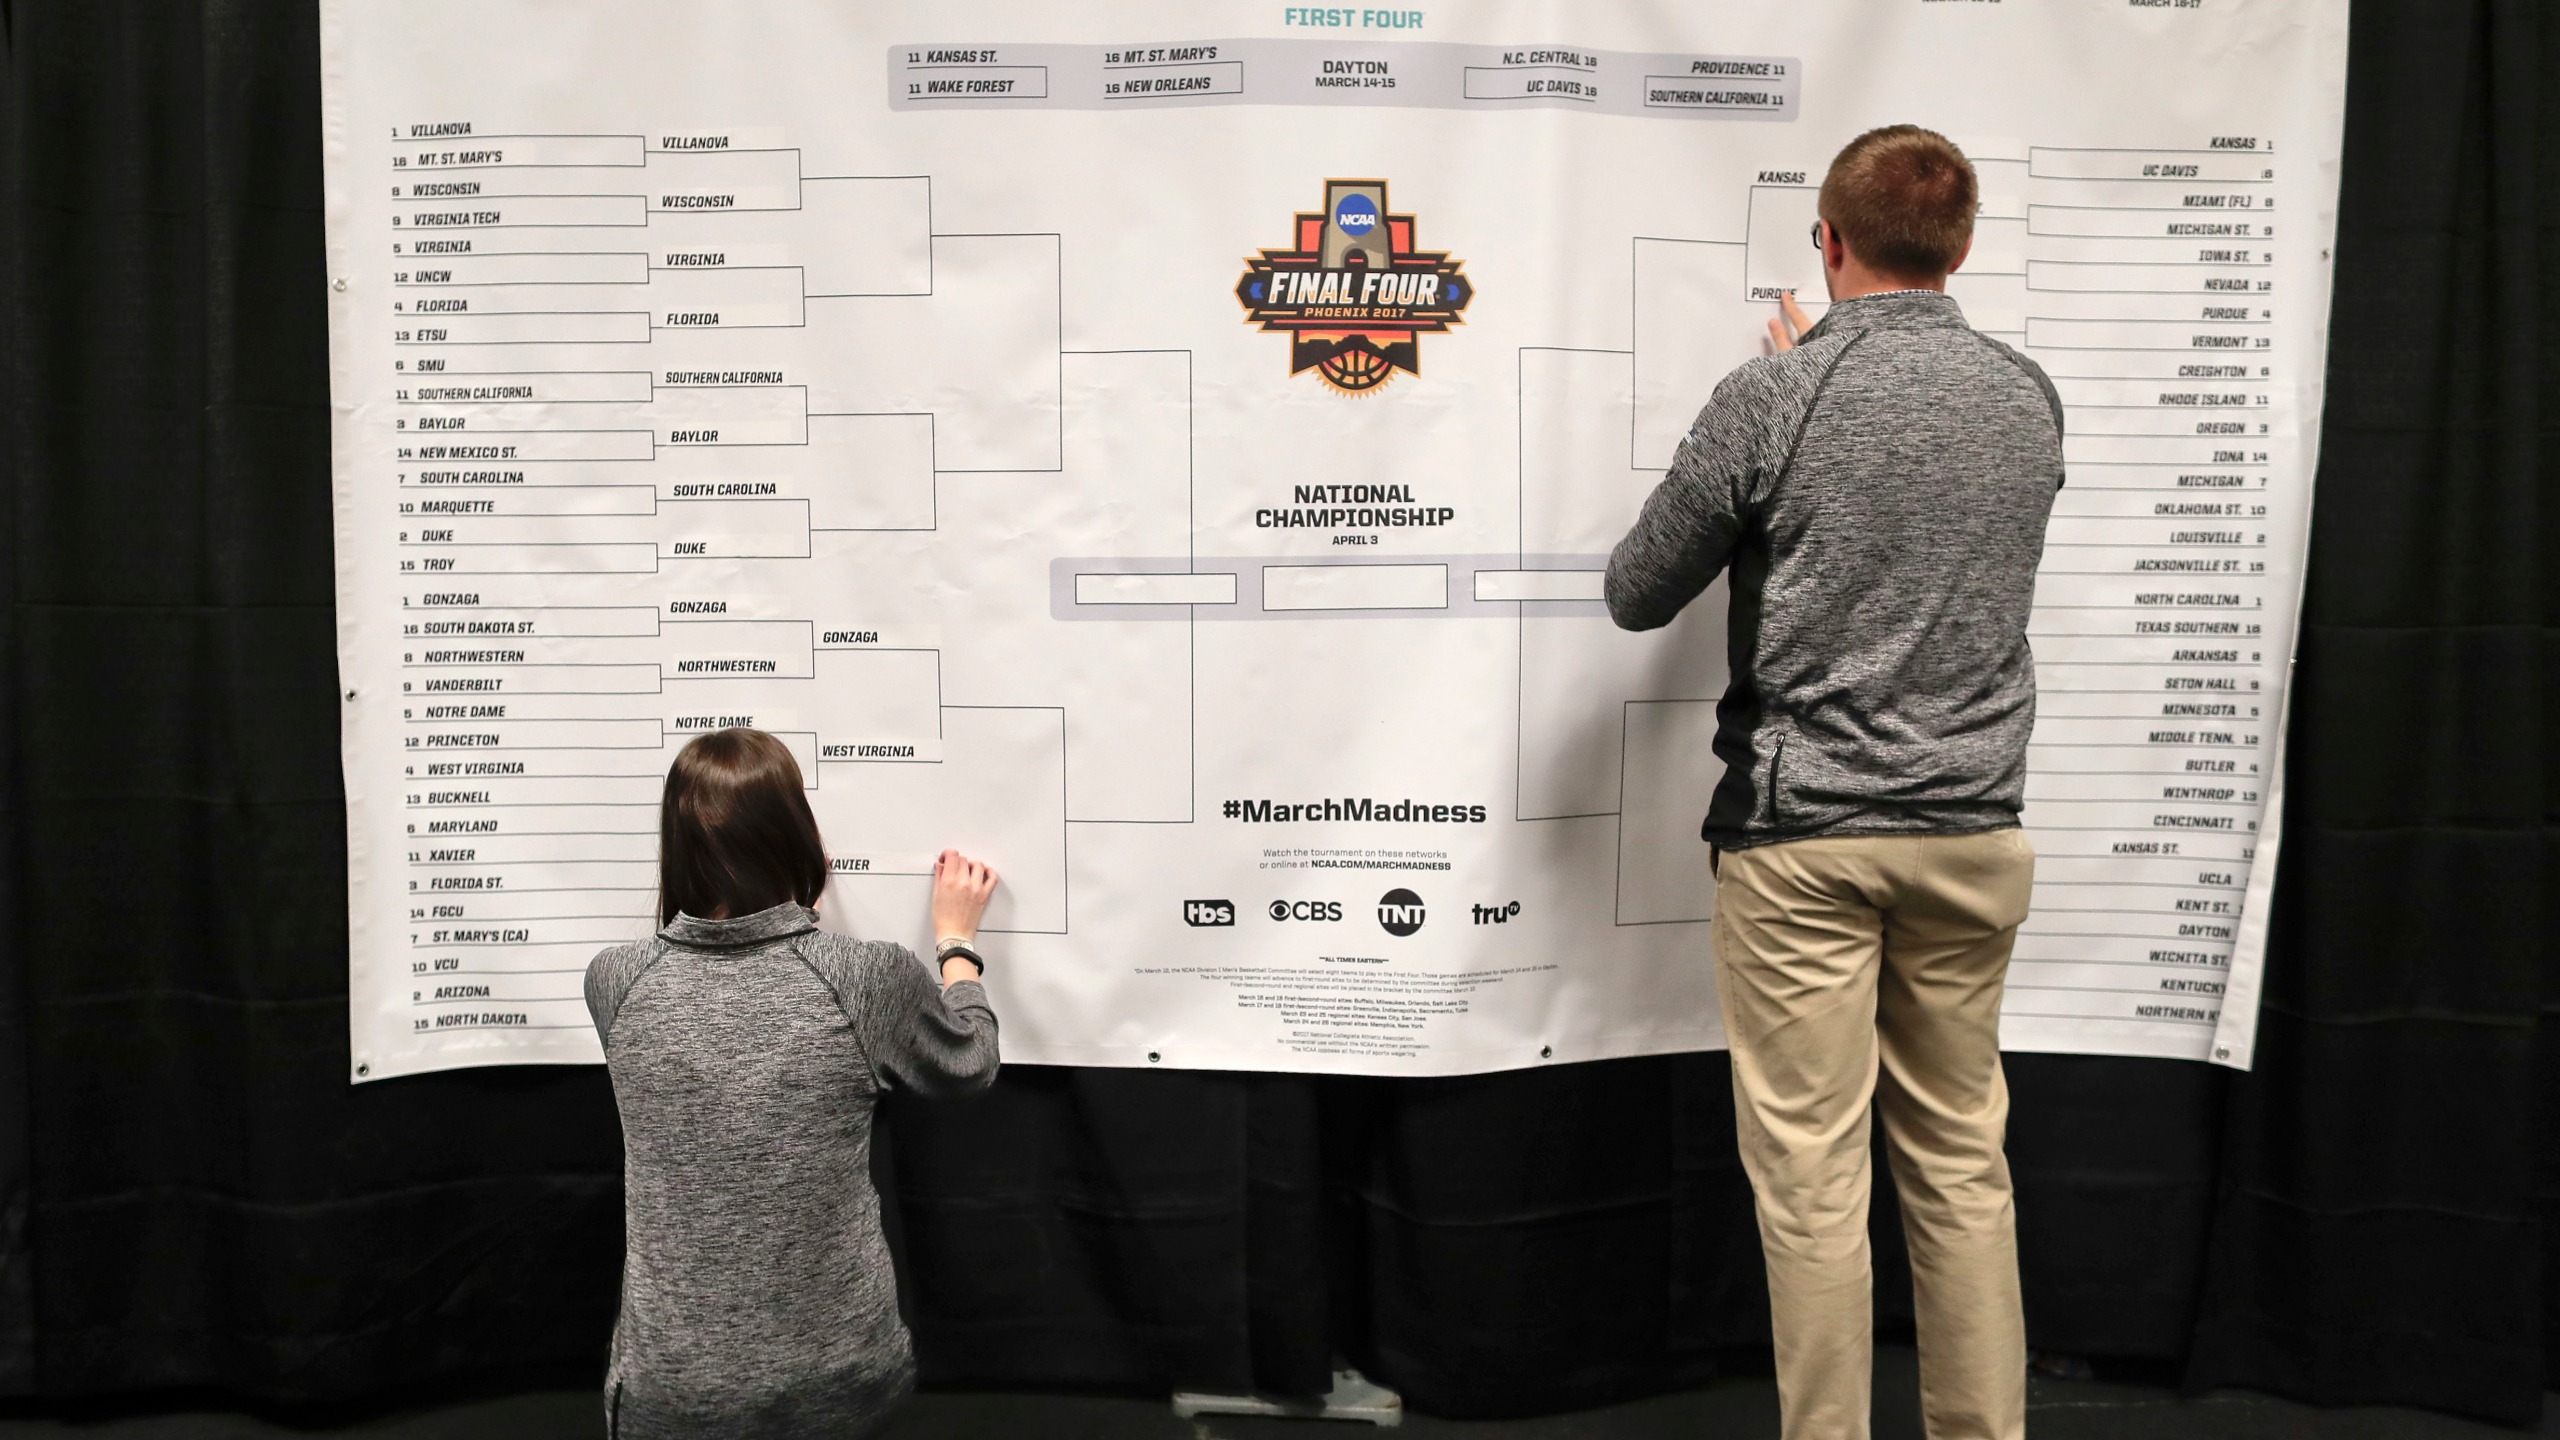 NCAA_Brackets_for_Everything_Basketball_47436-159532.jpg89137902